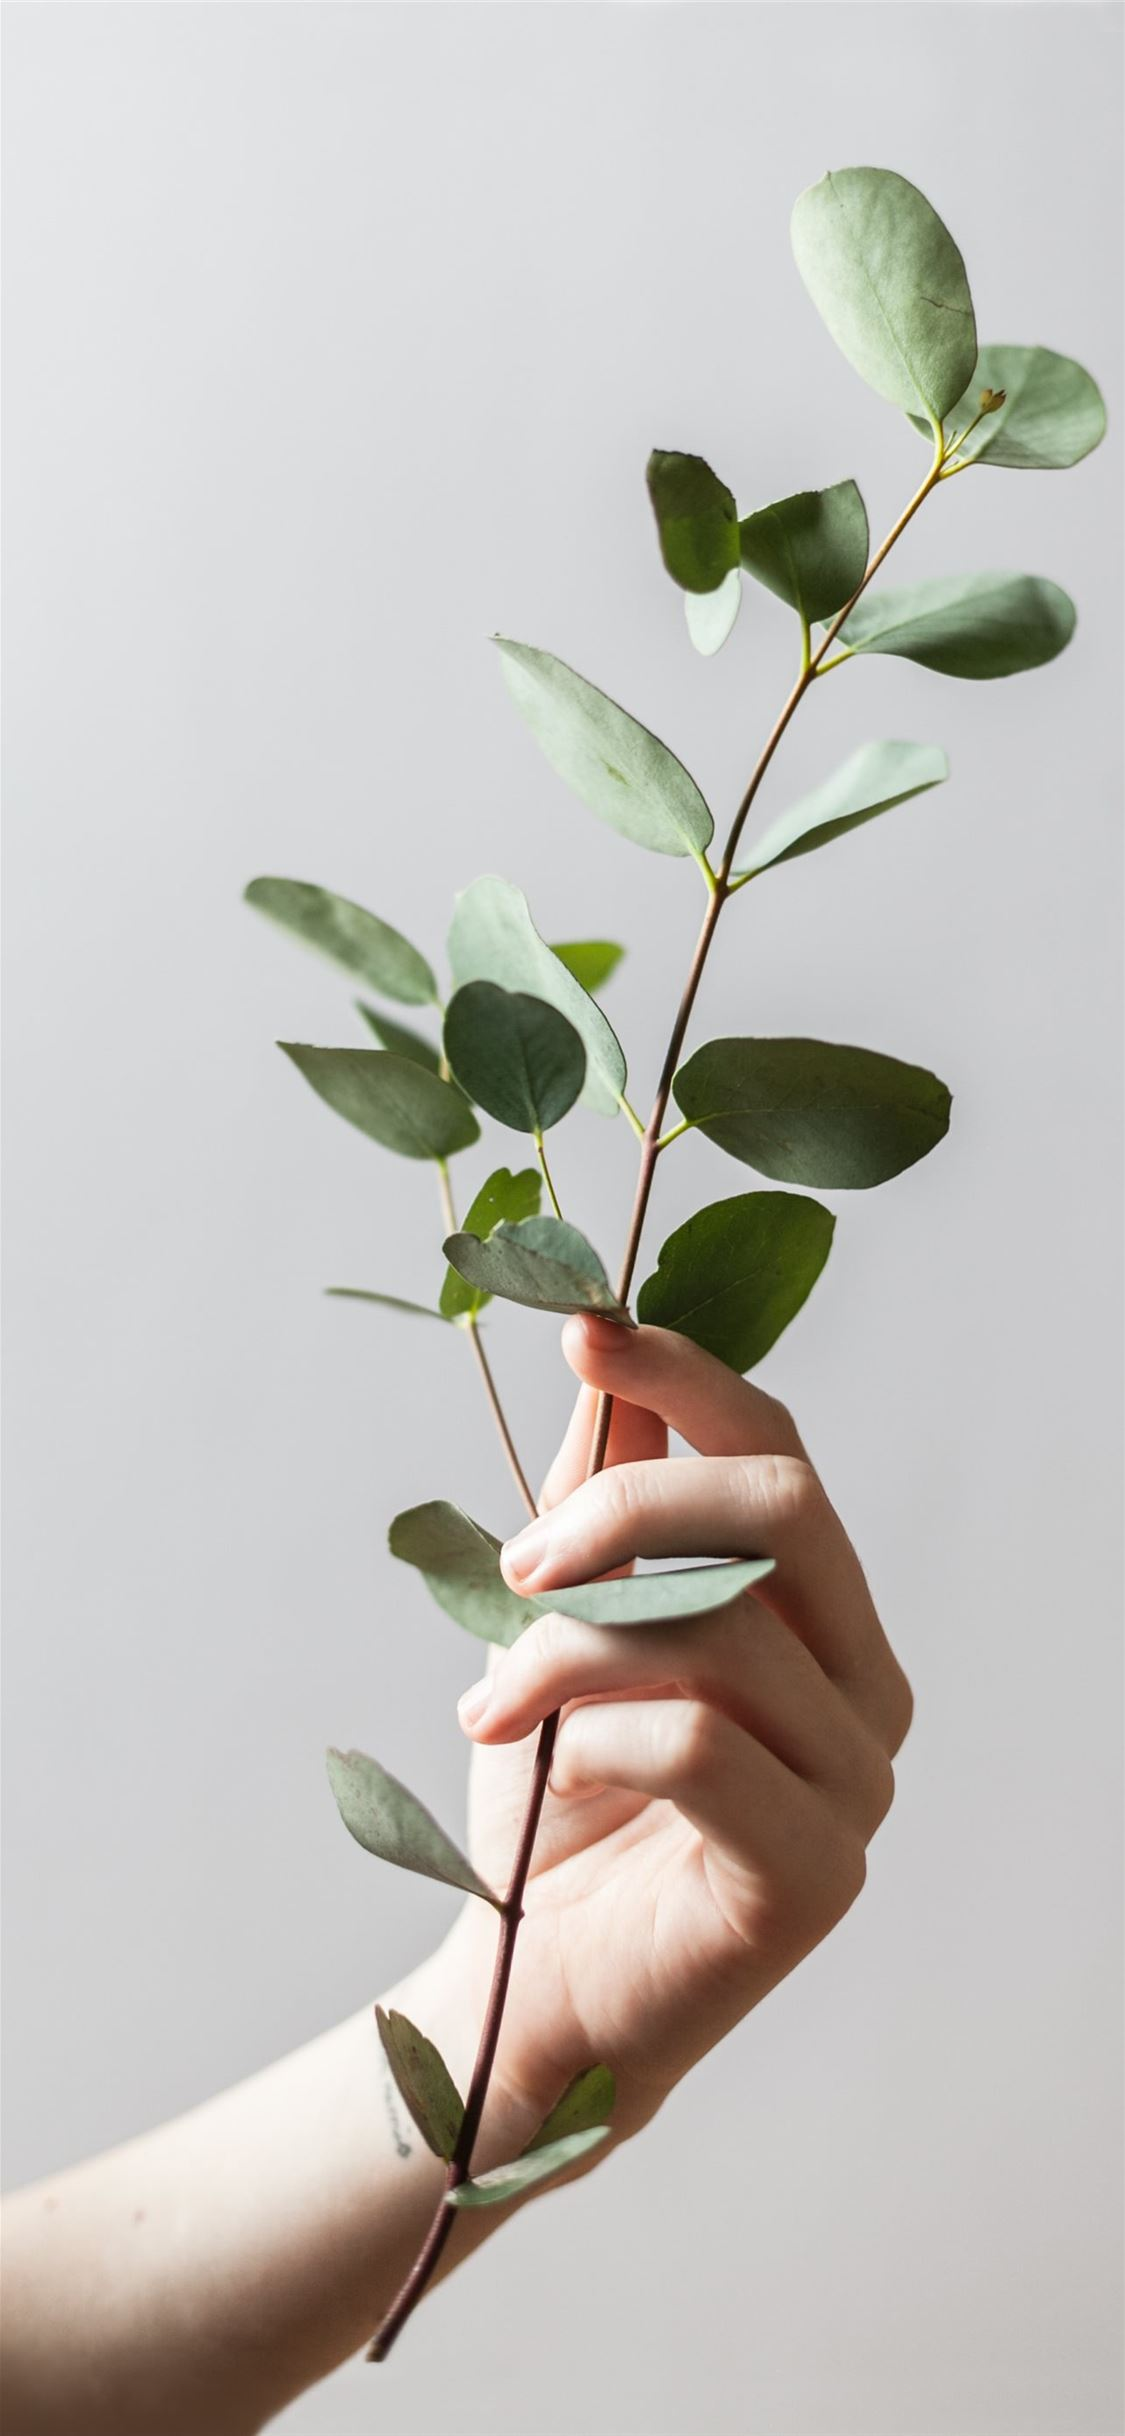 person holding leaf plant iPhone X wallpaper